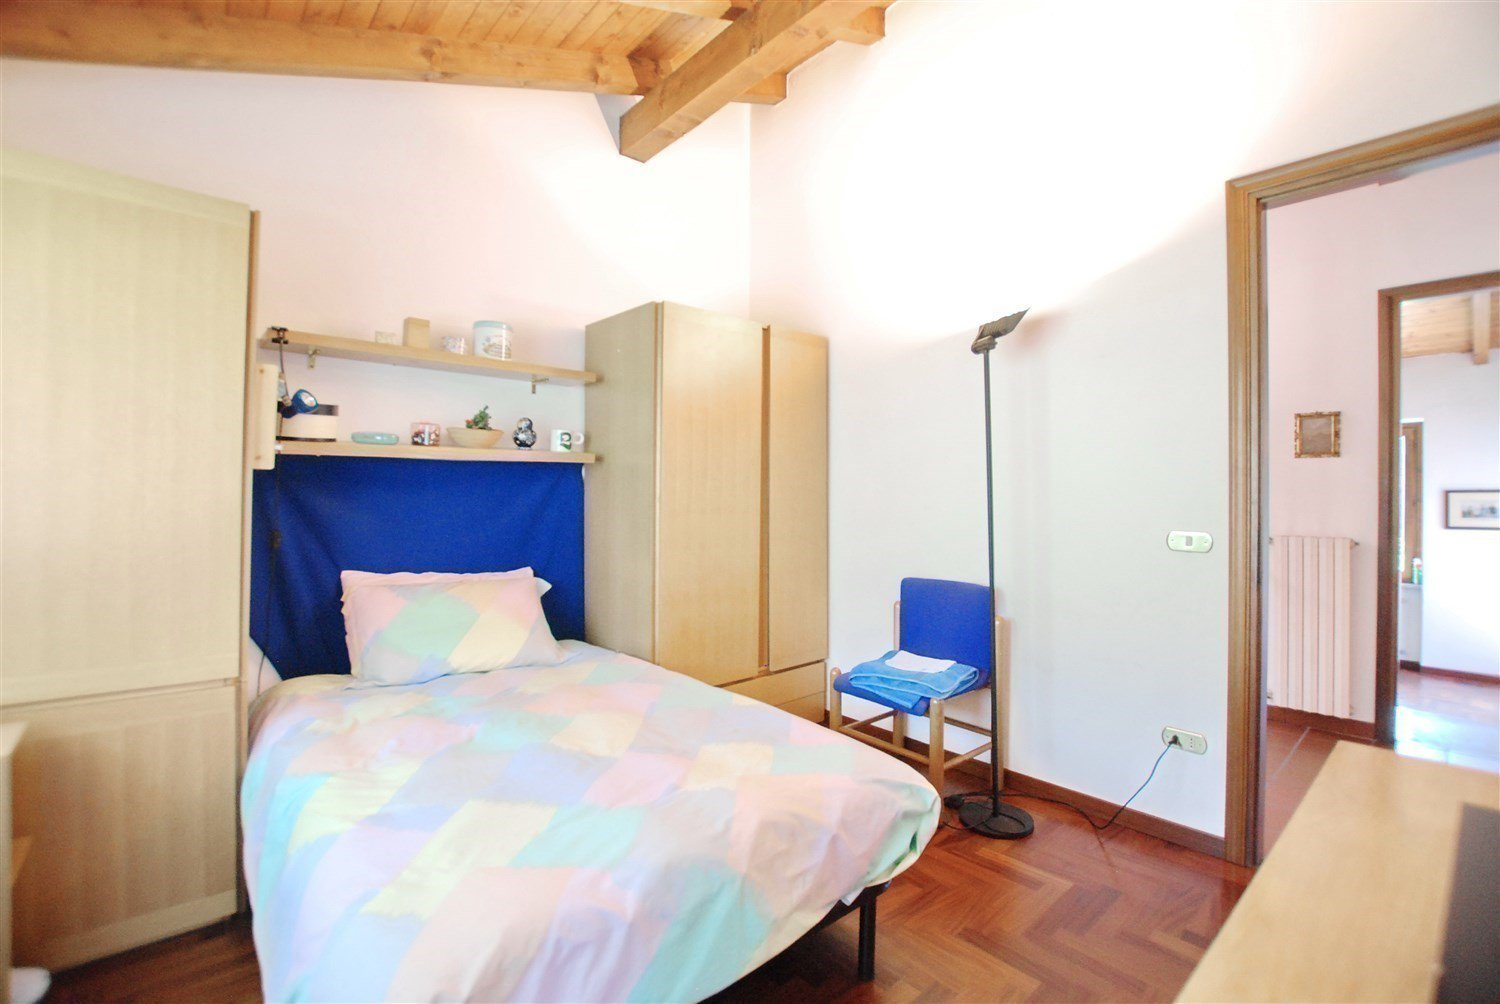 Terraced house for sale in Gignese, based in Vezzo - small bedroom